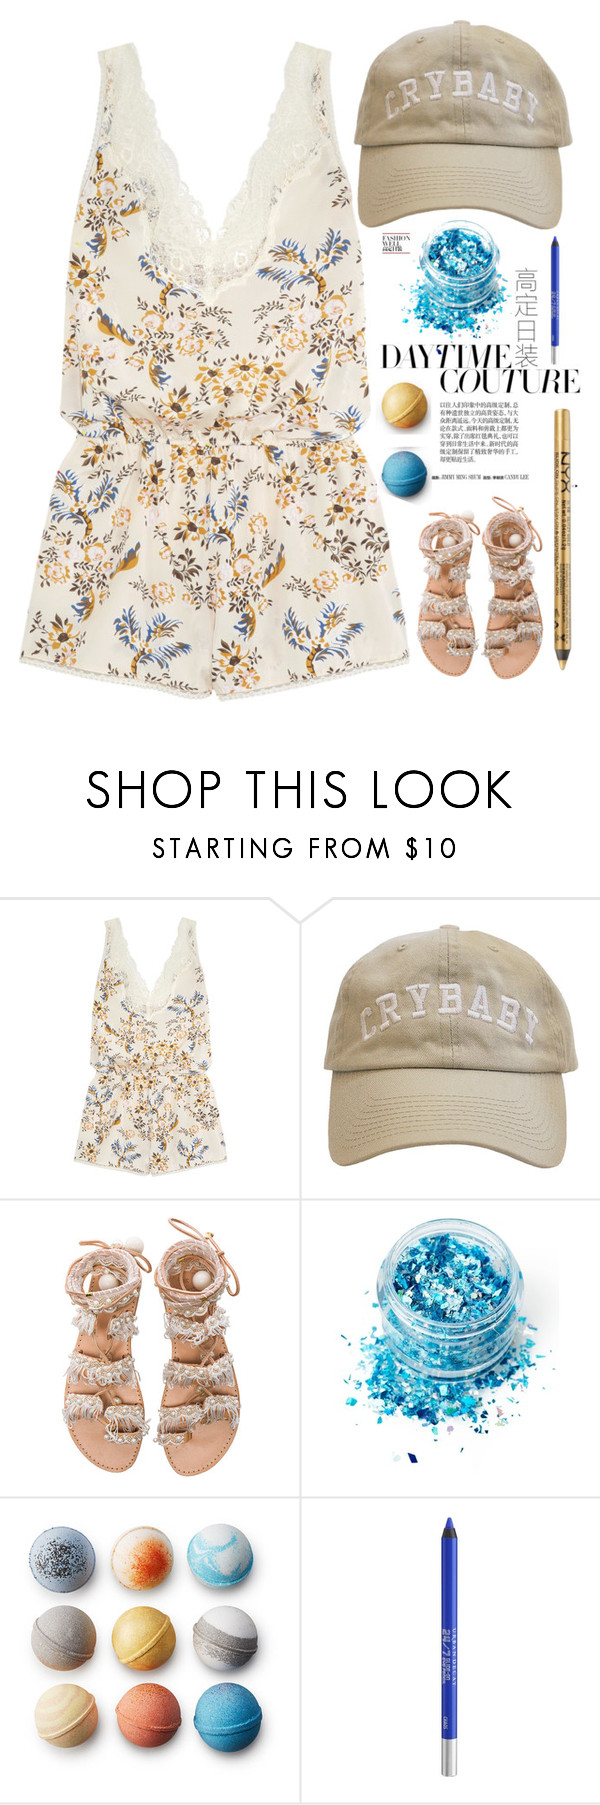 """""""I'm over it"""" by lseed87 ❤ liked on Polyvore featuring STELLA McCARTNEY, Elina Linardaki, In Your Dreams, Urban Decay and NYX"""